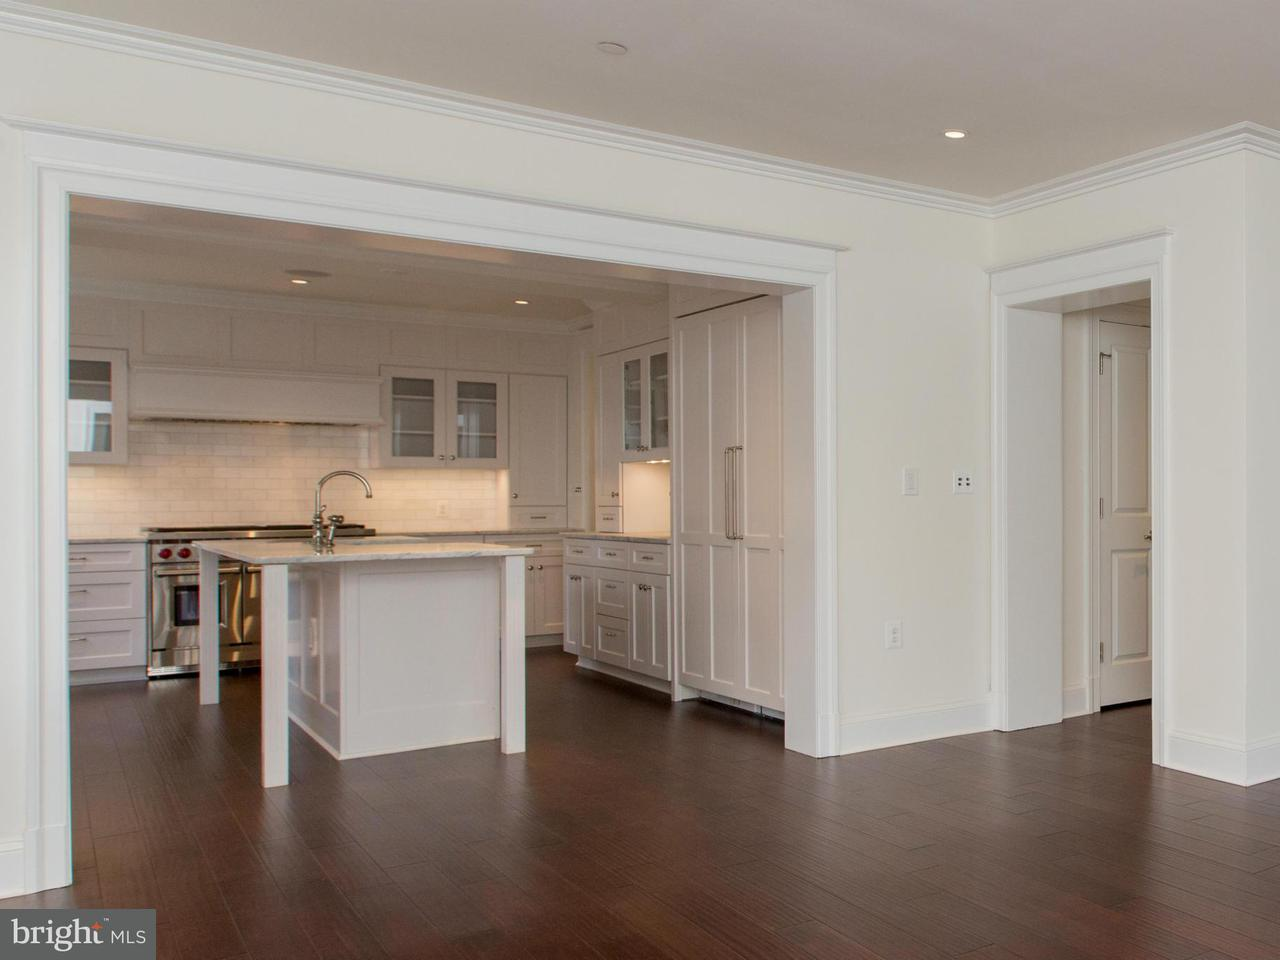 Additional photo for property listing at 2715 N St NW  Washington, District Of Columbia 20007 United States